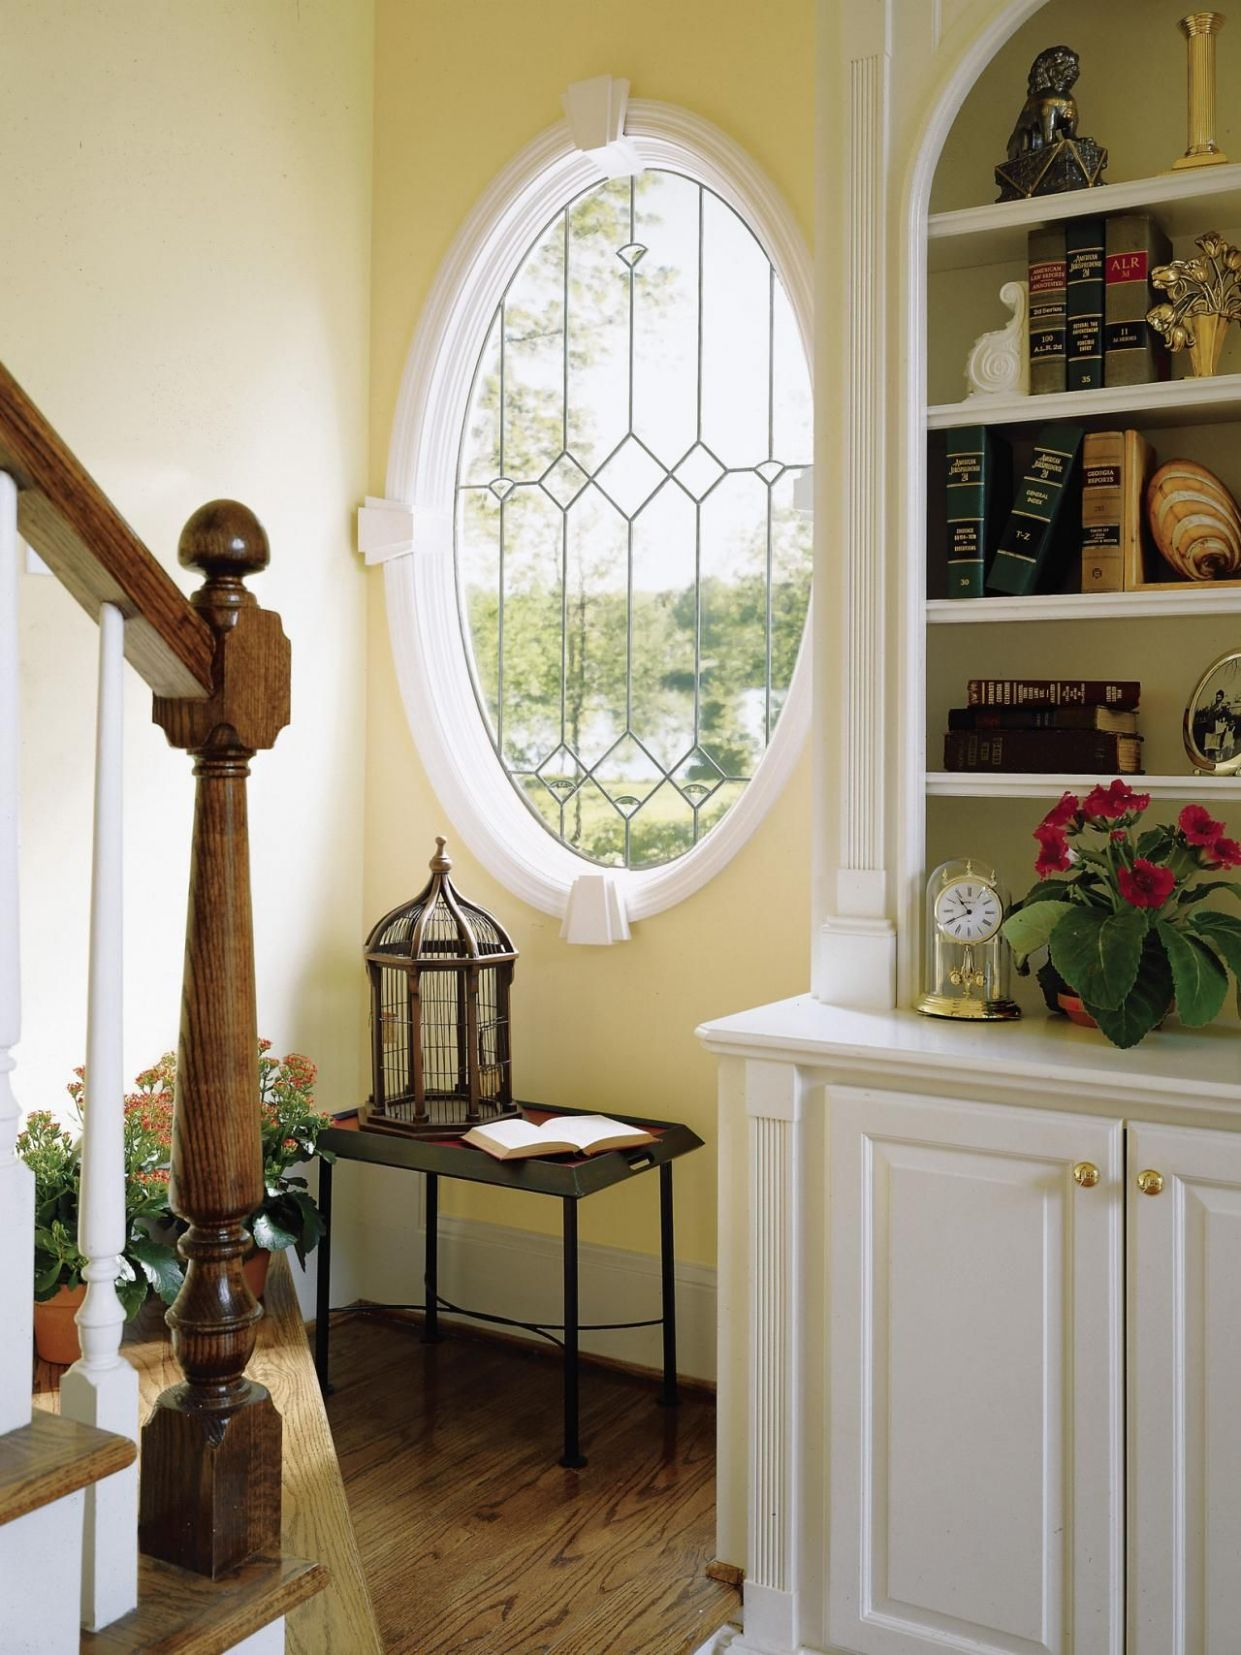 Window Grids for Your Home Style   House styles, Home, Window grids - window grid ideas